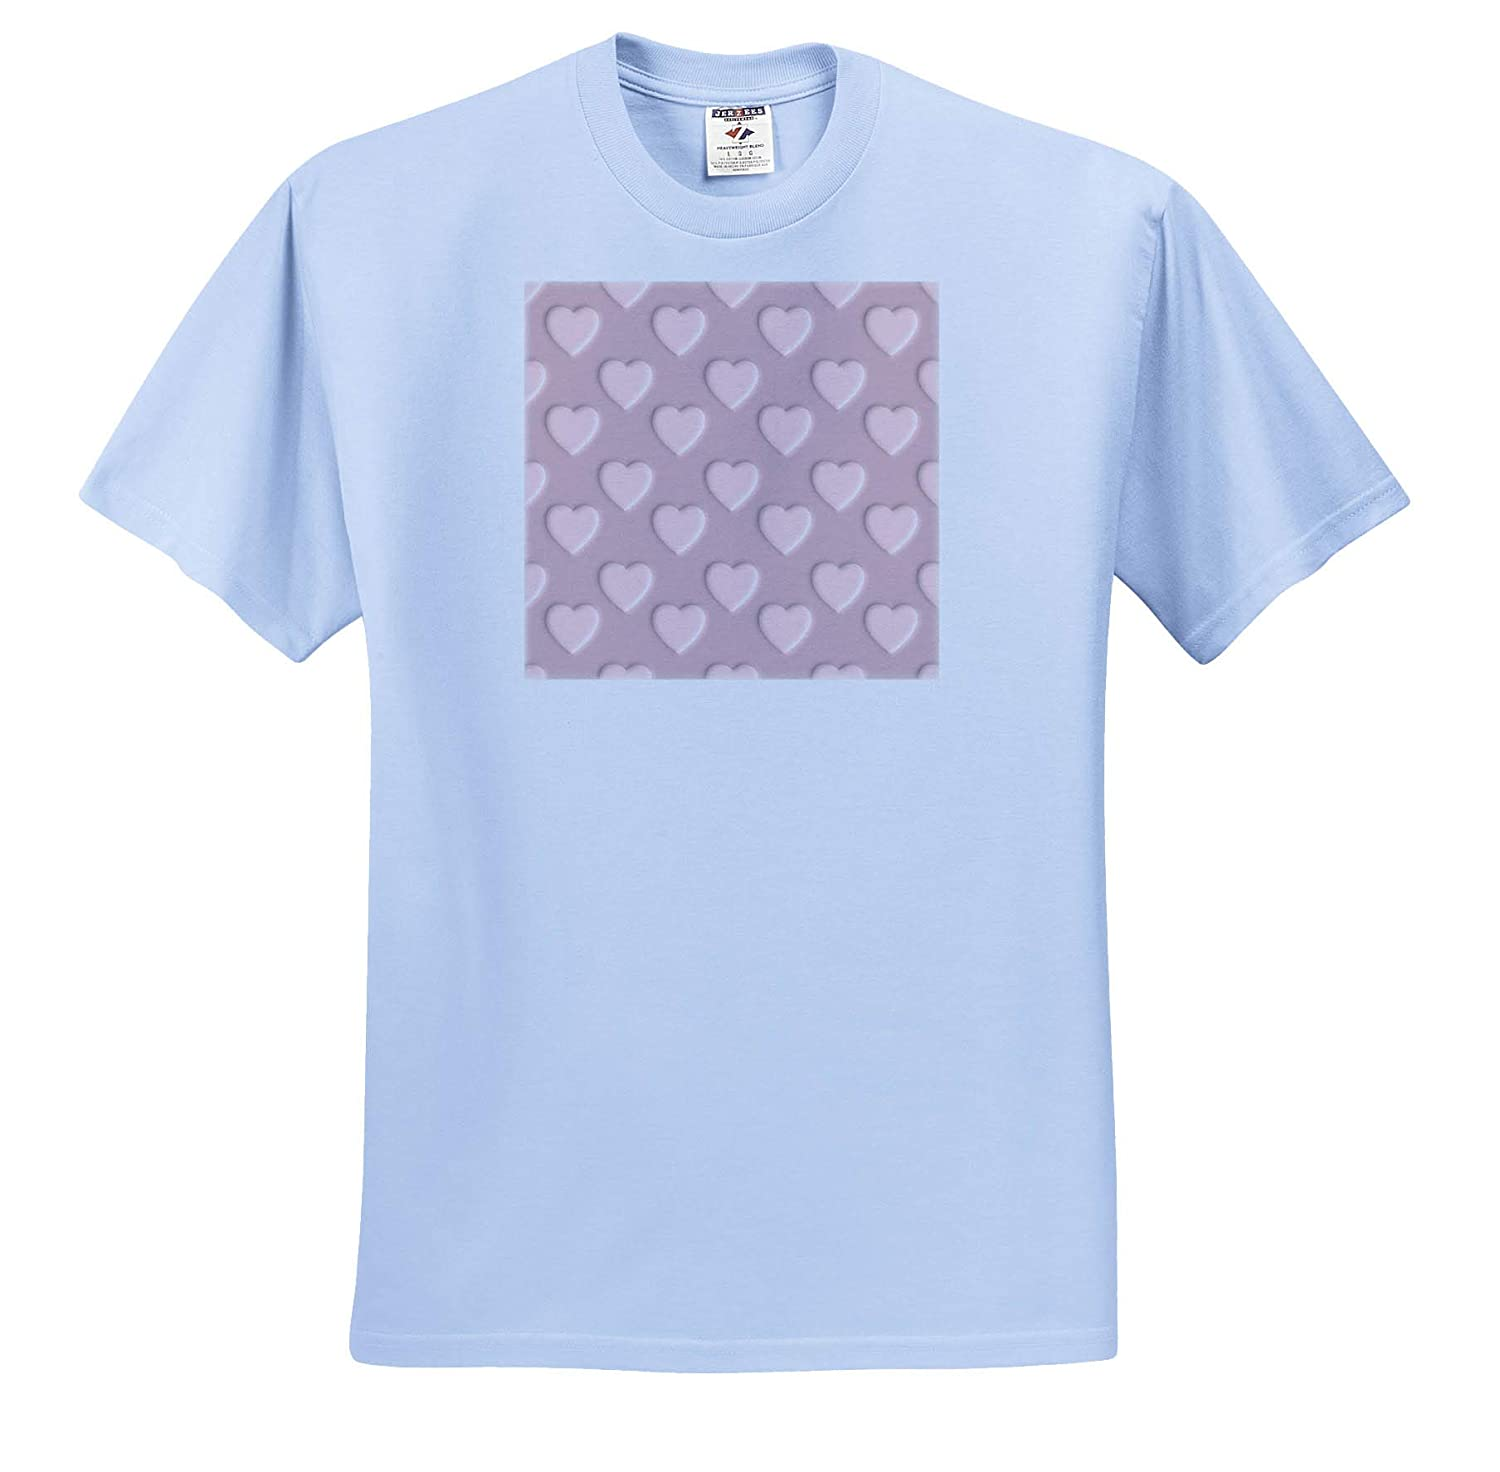 ts/_311213 Image of Pierced Hearts Pattern in Damask Pink- not Embossed 3dRose Russ Billington Patterns Adult T-Shirt XL